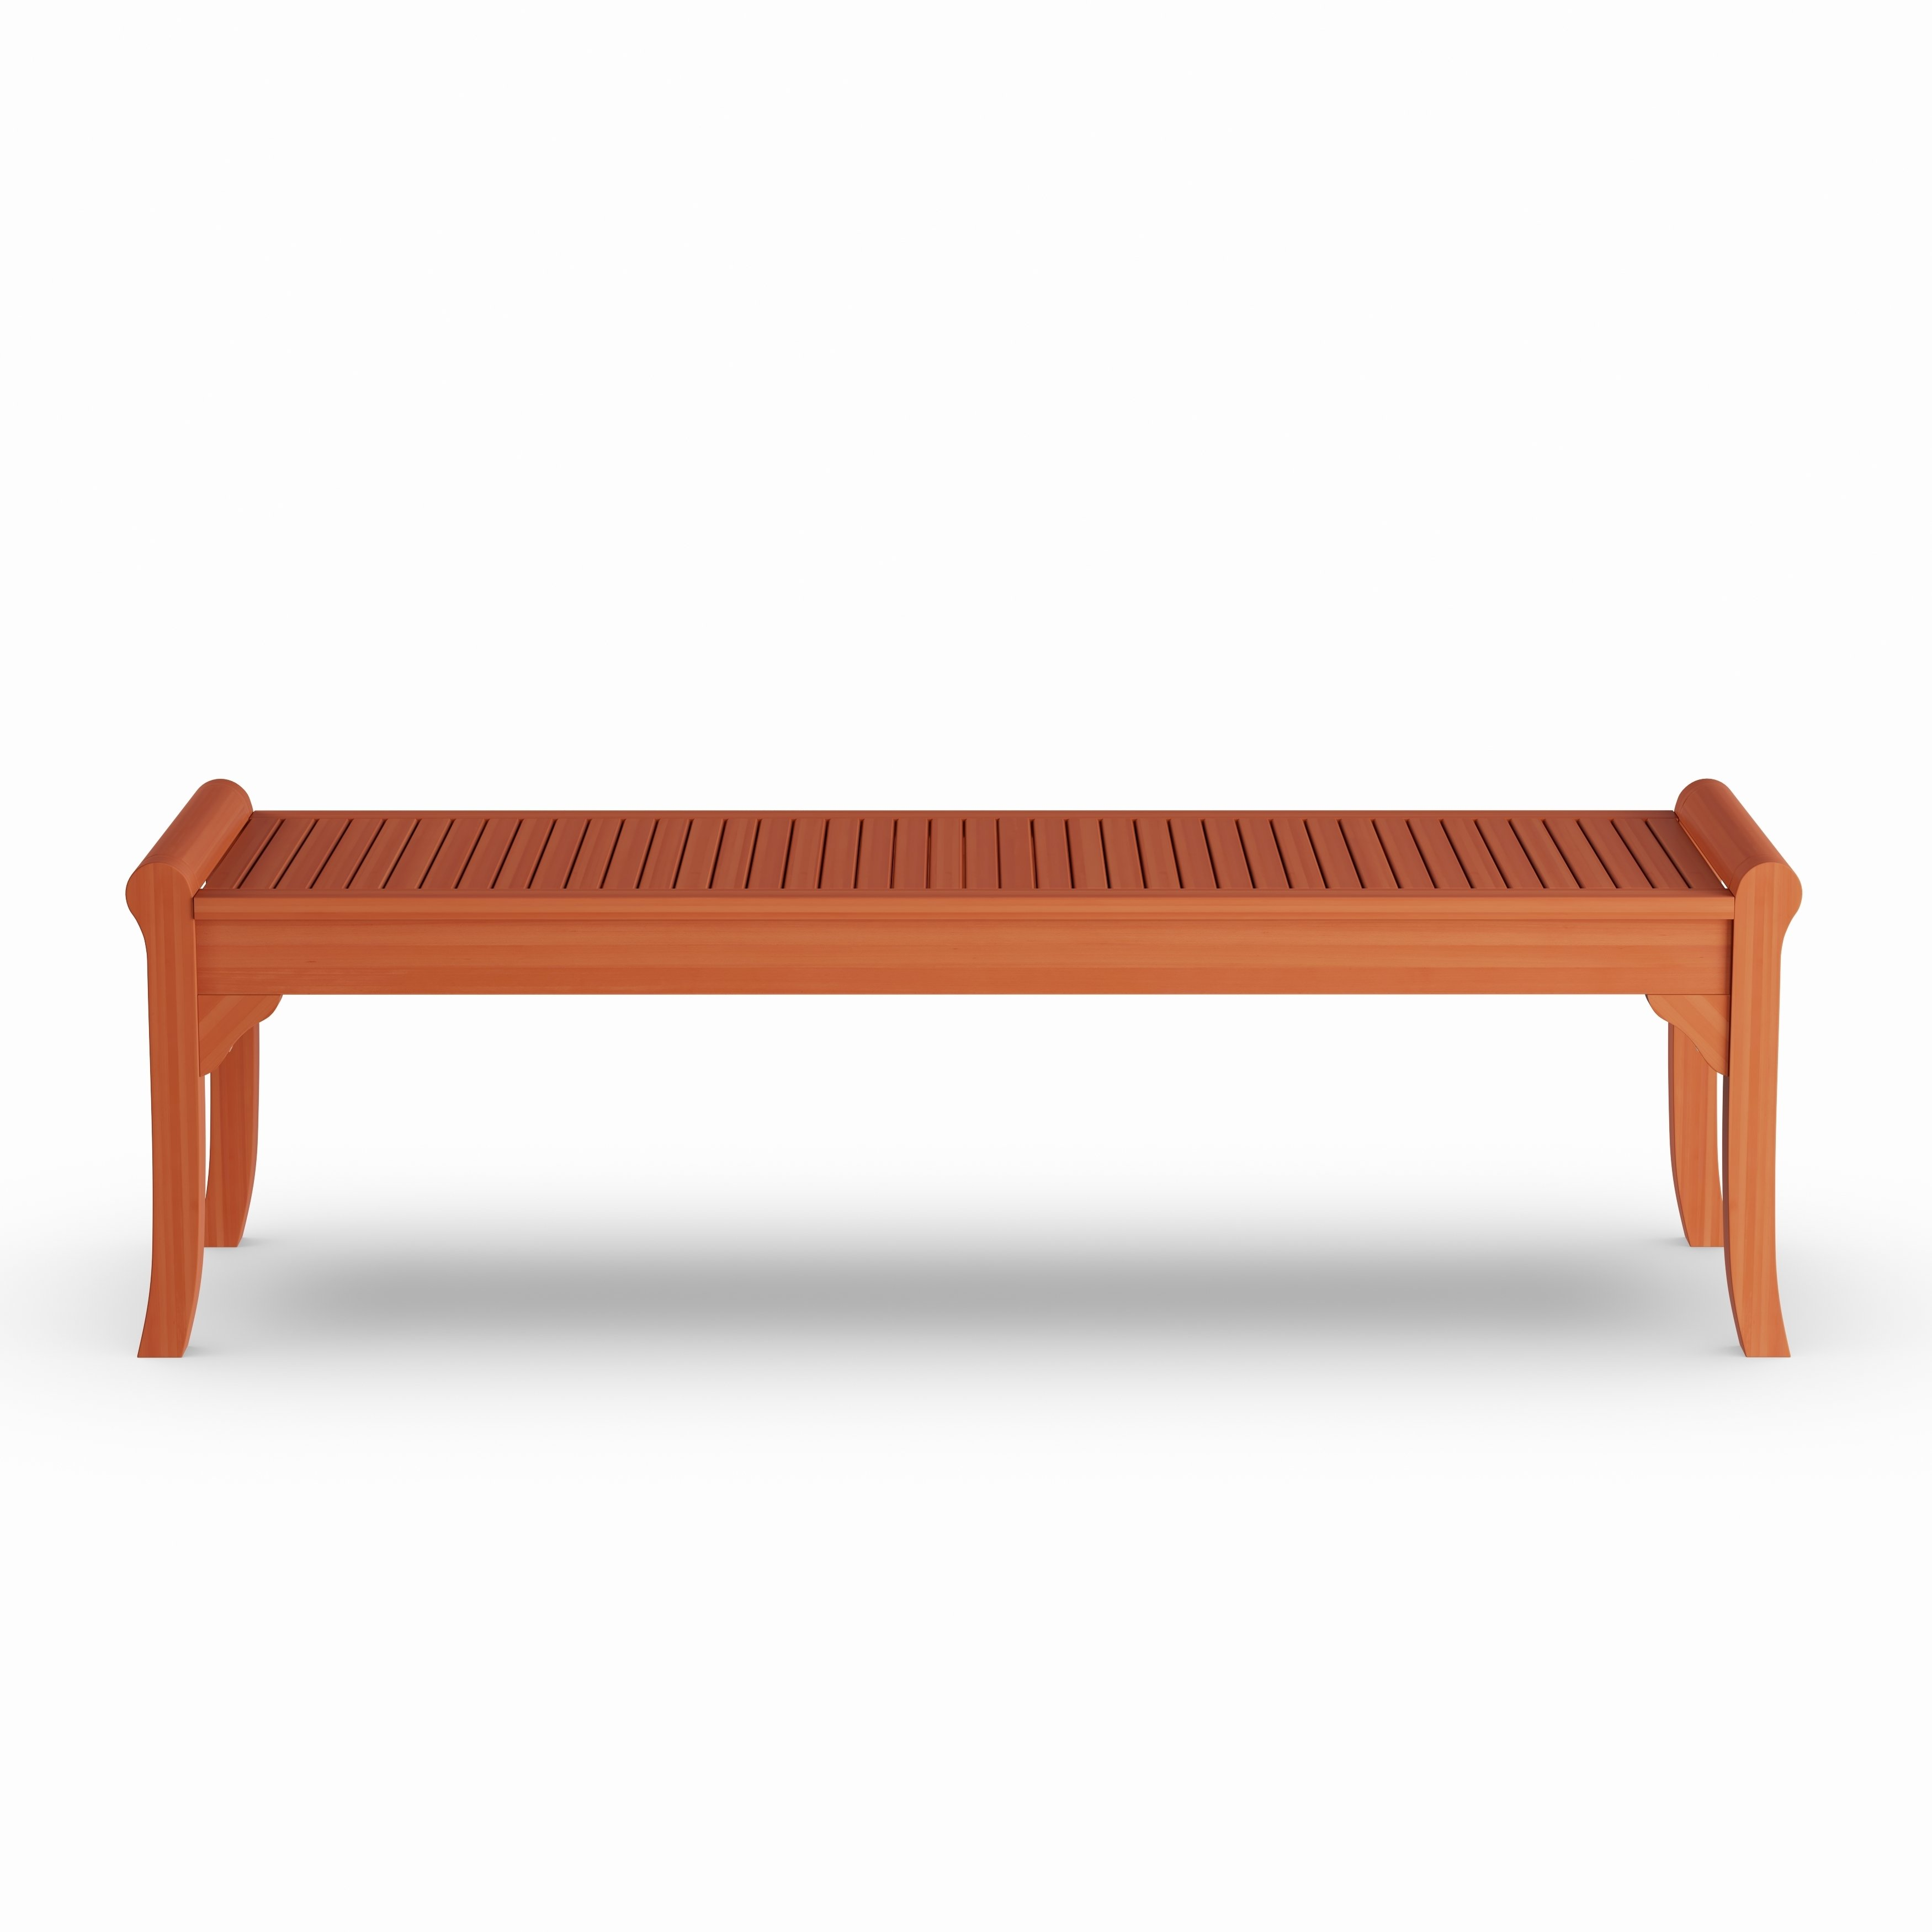 havenside home surfside cochran foot outdoor wood bench the gray barn bluebird middletown accent patio table free shipping today narrow chairside better homes coffee small end